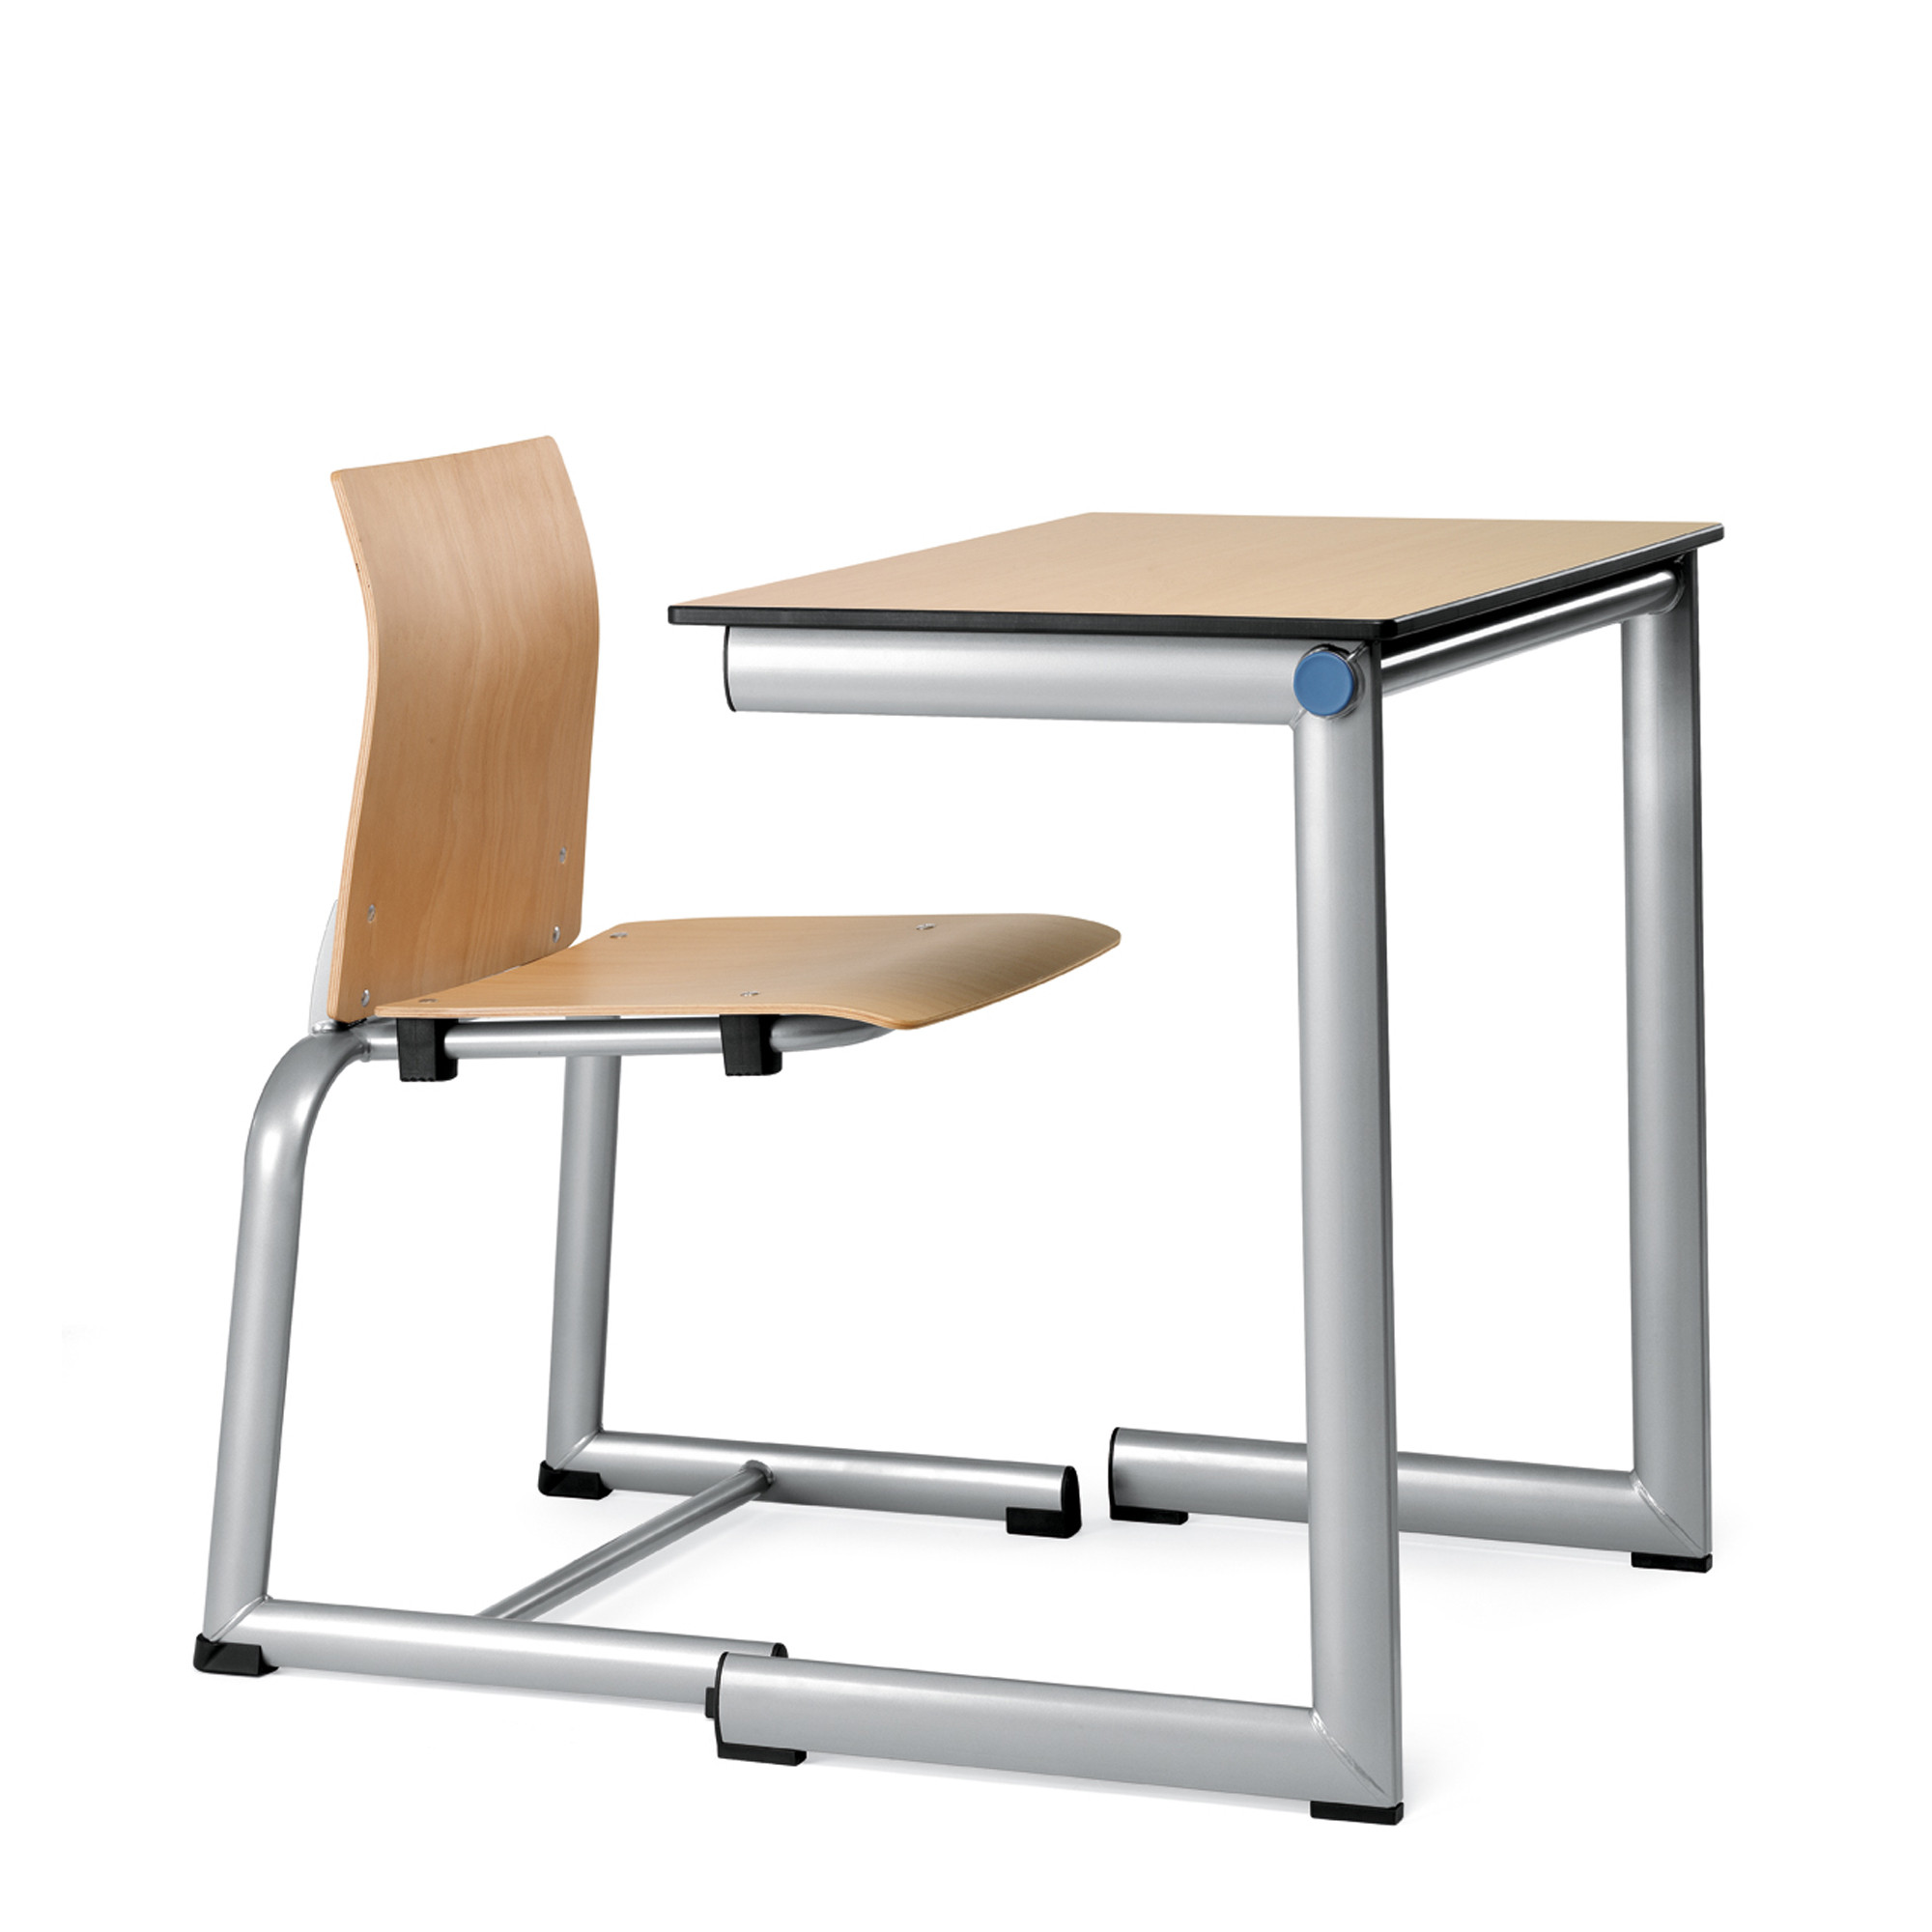 Modern school desk and chair - Ahrend 452 School Chair